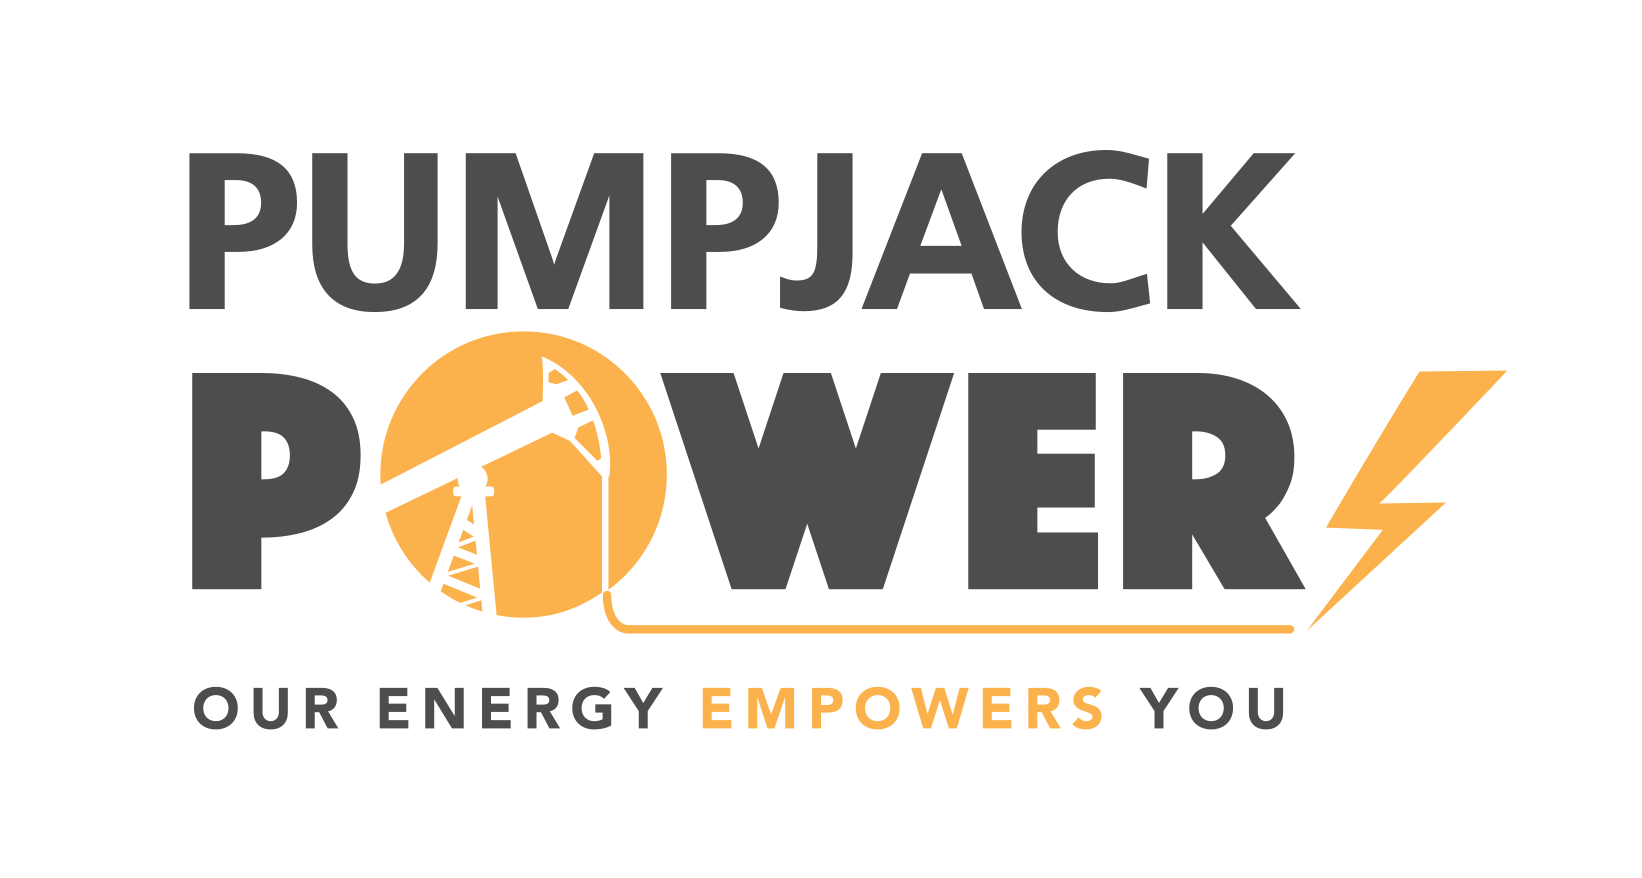 Pumpjack Power